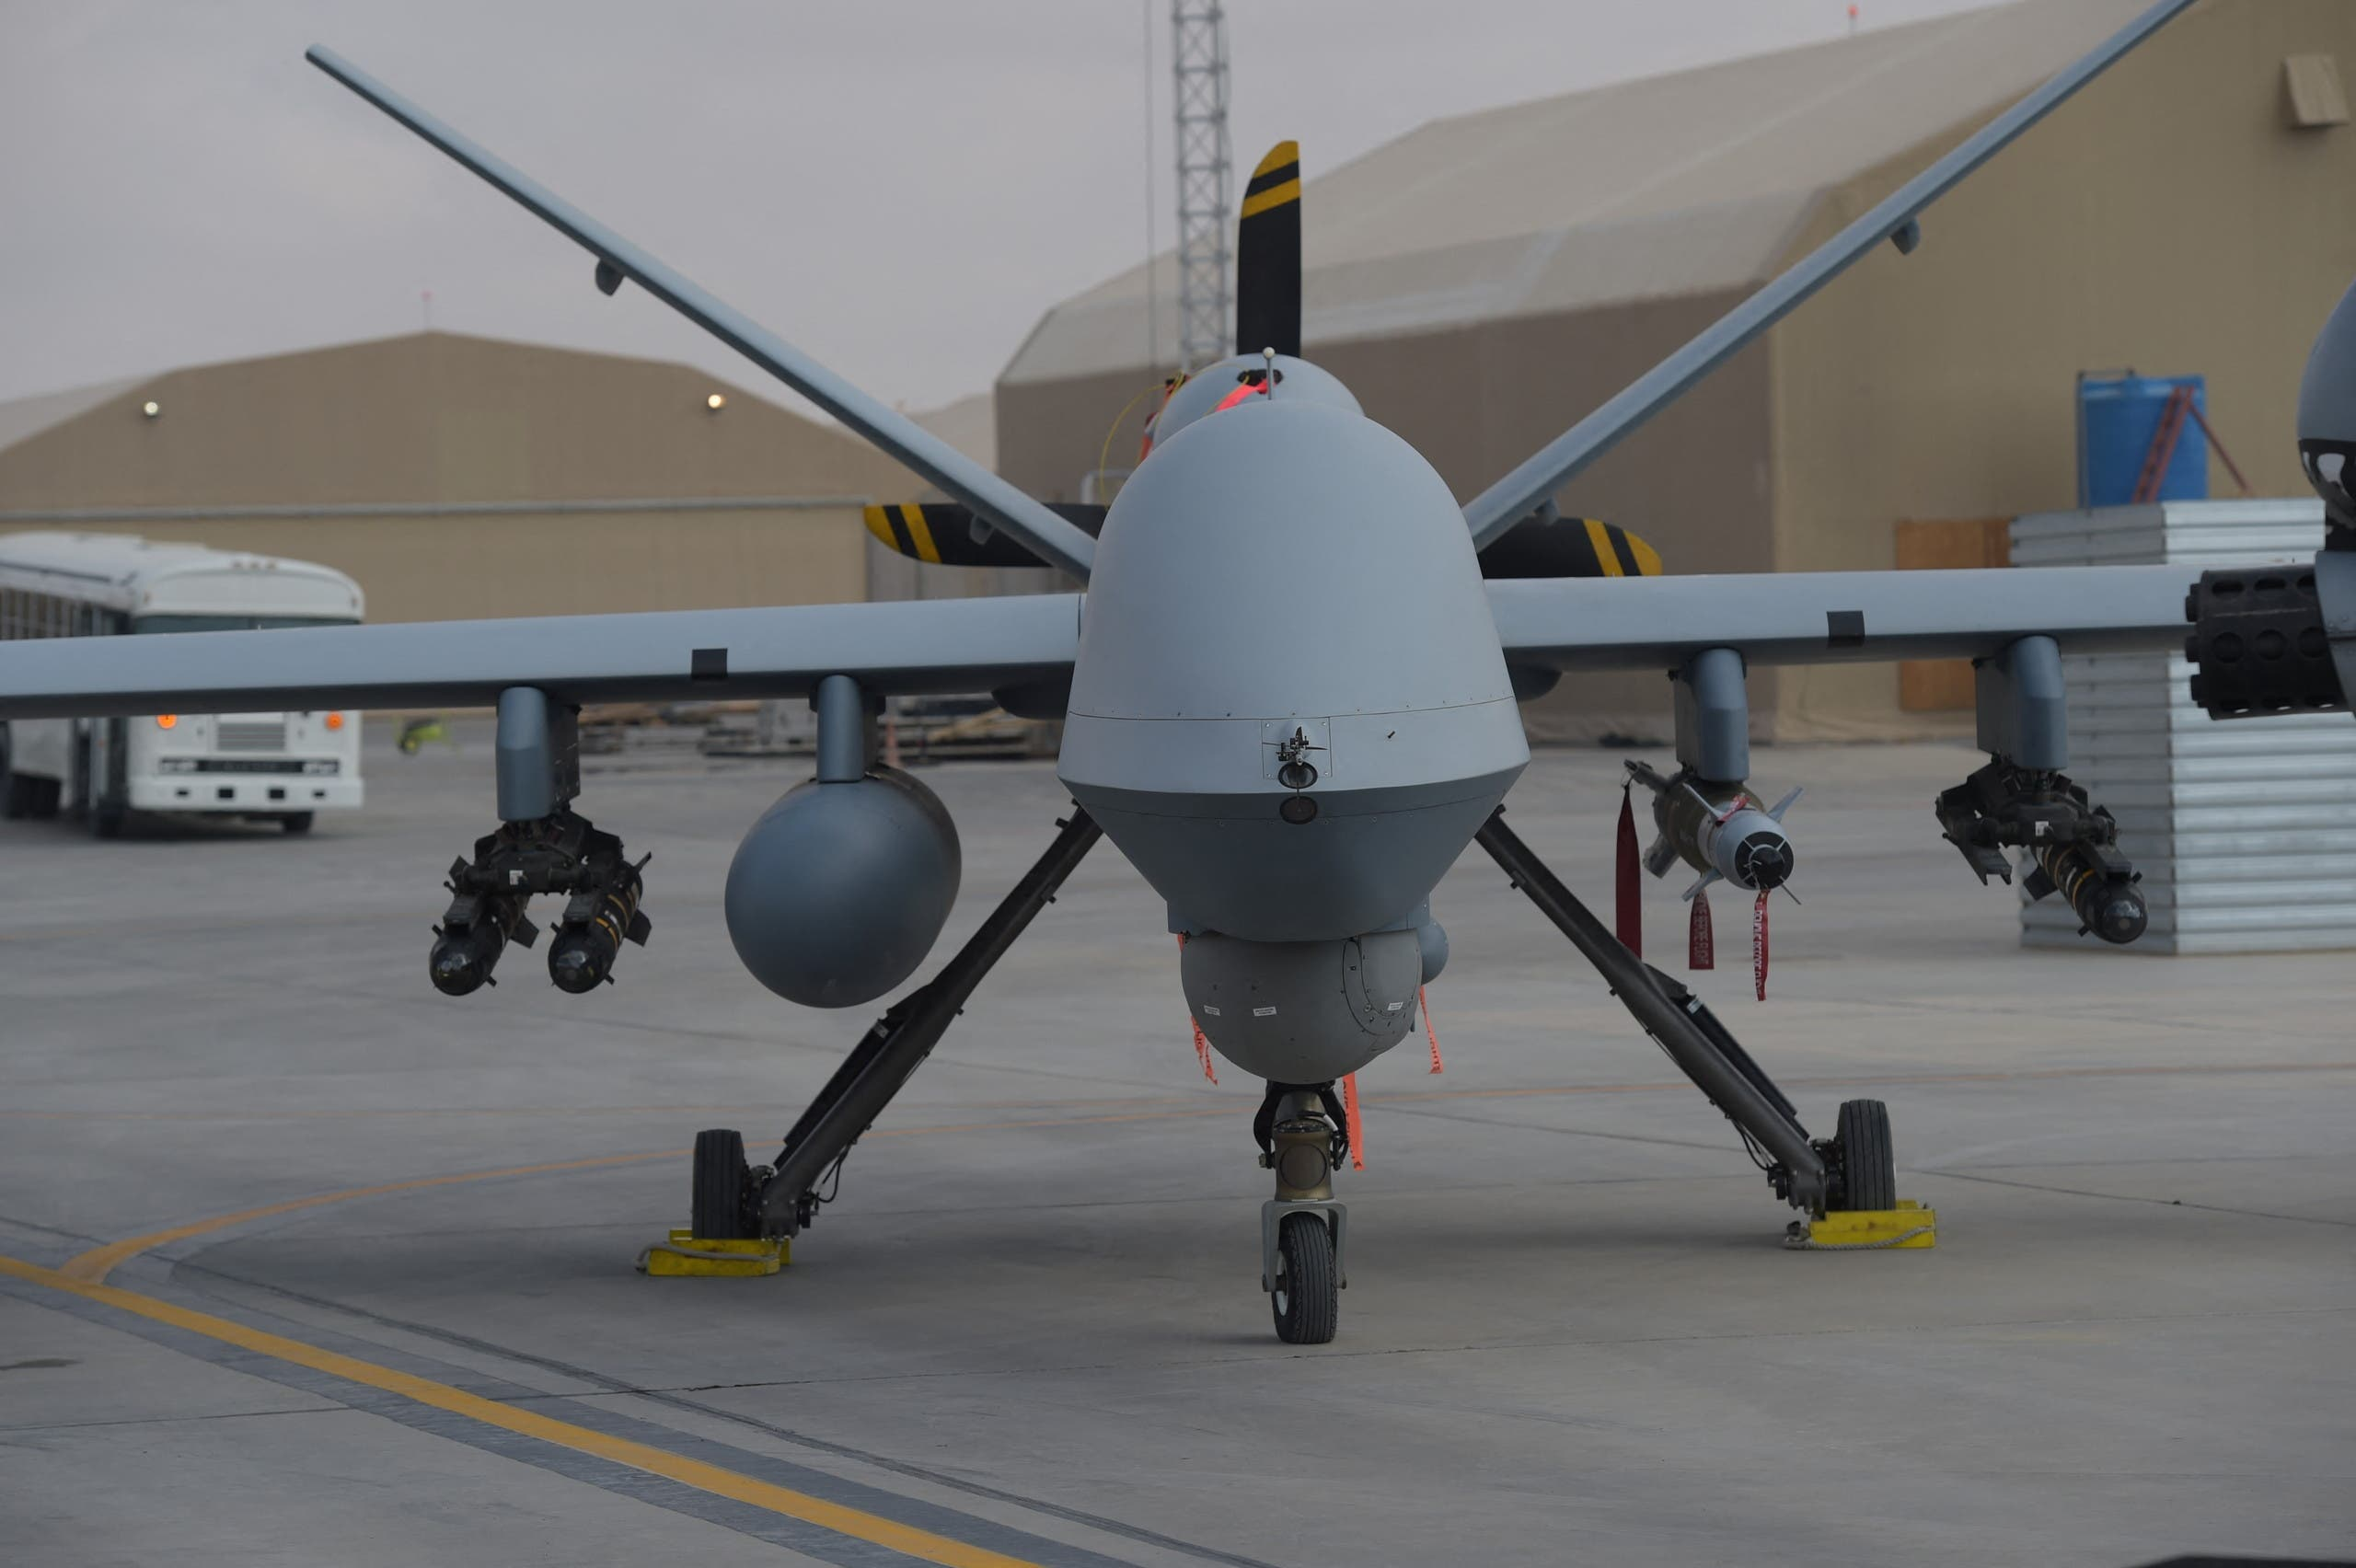 The good news for Americans is that armed conflict is increasingly being fought remotely through drones, meaning the next conflict will likely feature fewer US soldiers on the ground. (Stock image)